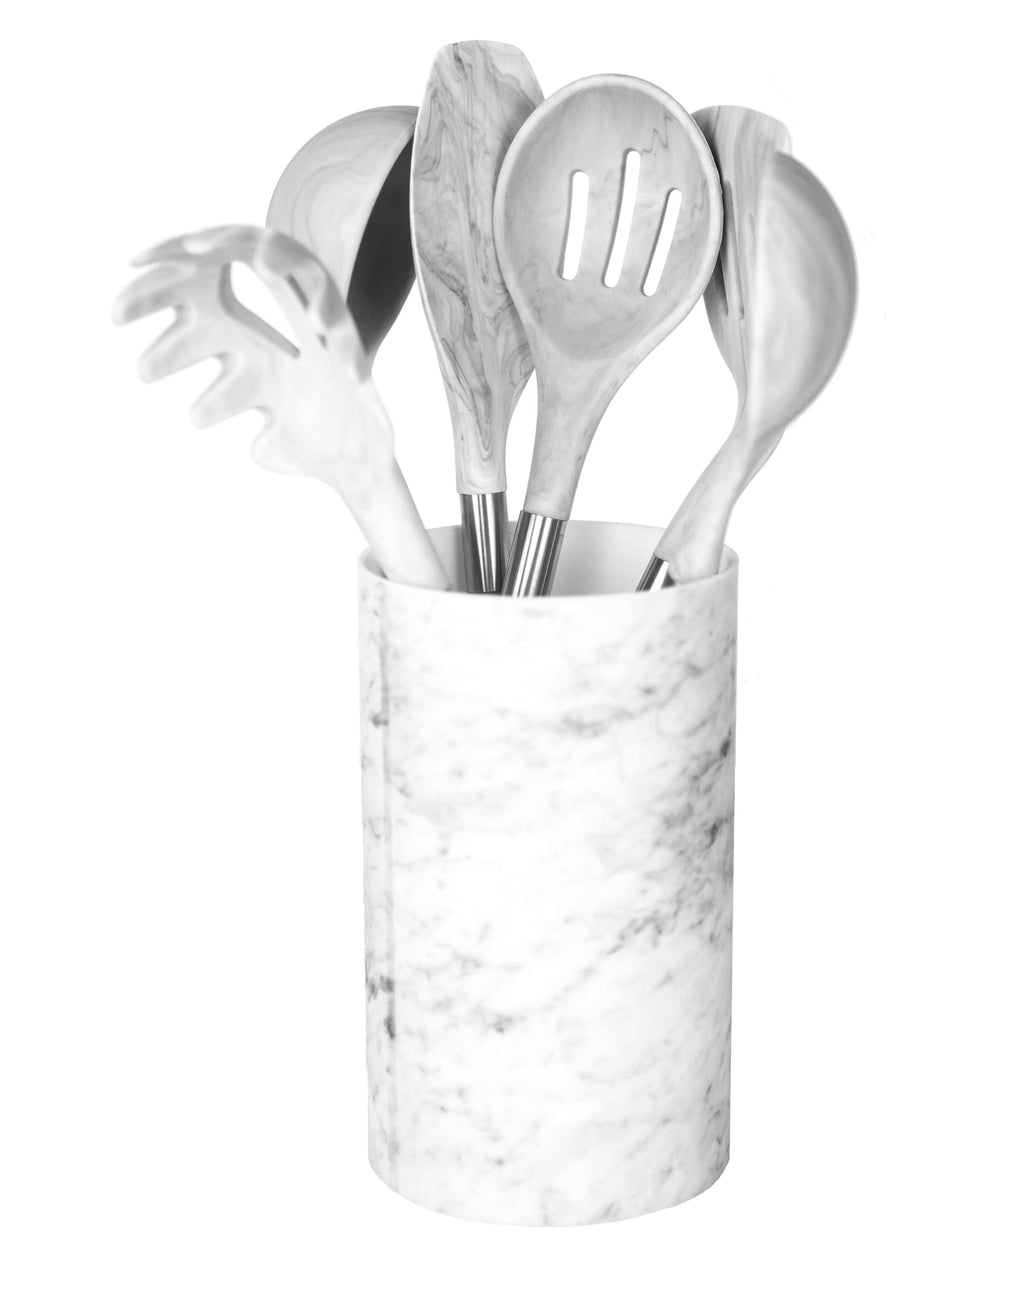 BRAND NEW! Marble Silicone Kitchen Utensil Set by Integrity Chef with Utensil Holder - Gorgeous Kitchen Utensils Cookware Set With Premium Acacia Wood Handles | Cooking Utensils Wedding Registry Gift